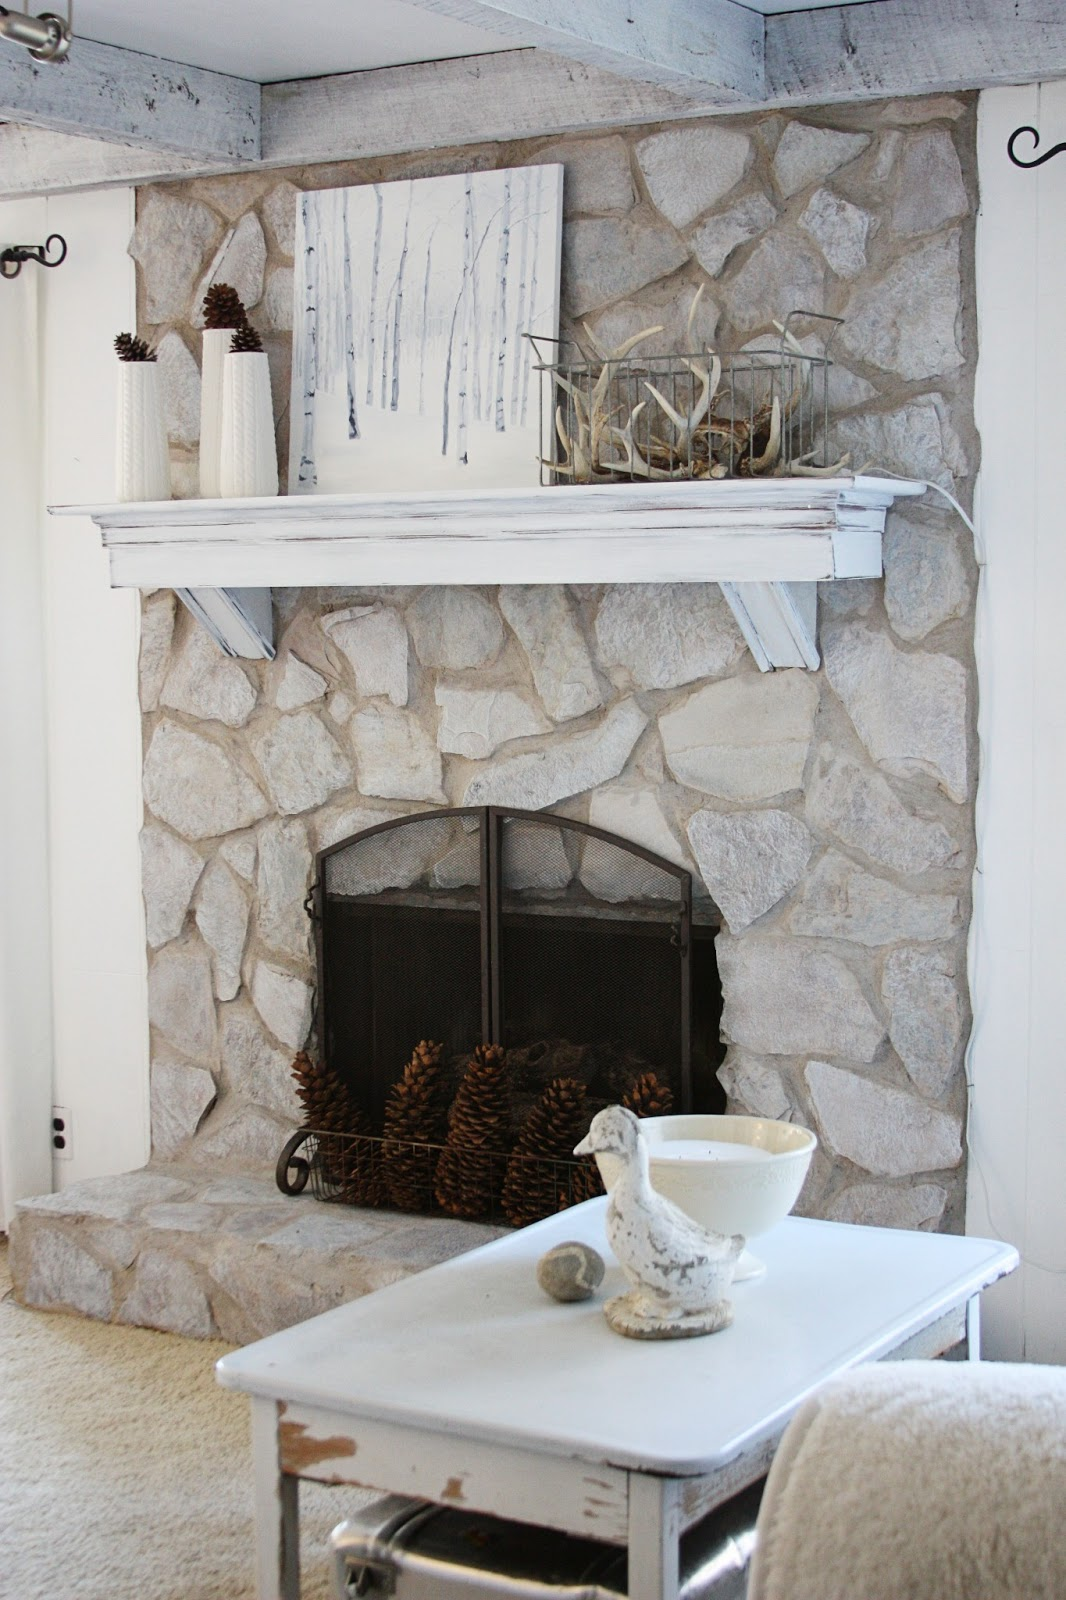 erins art and gardens painted stone fireplace before and after